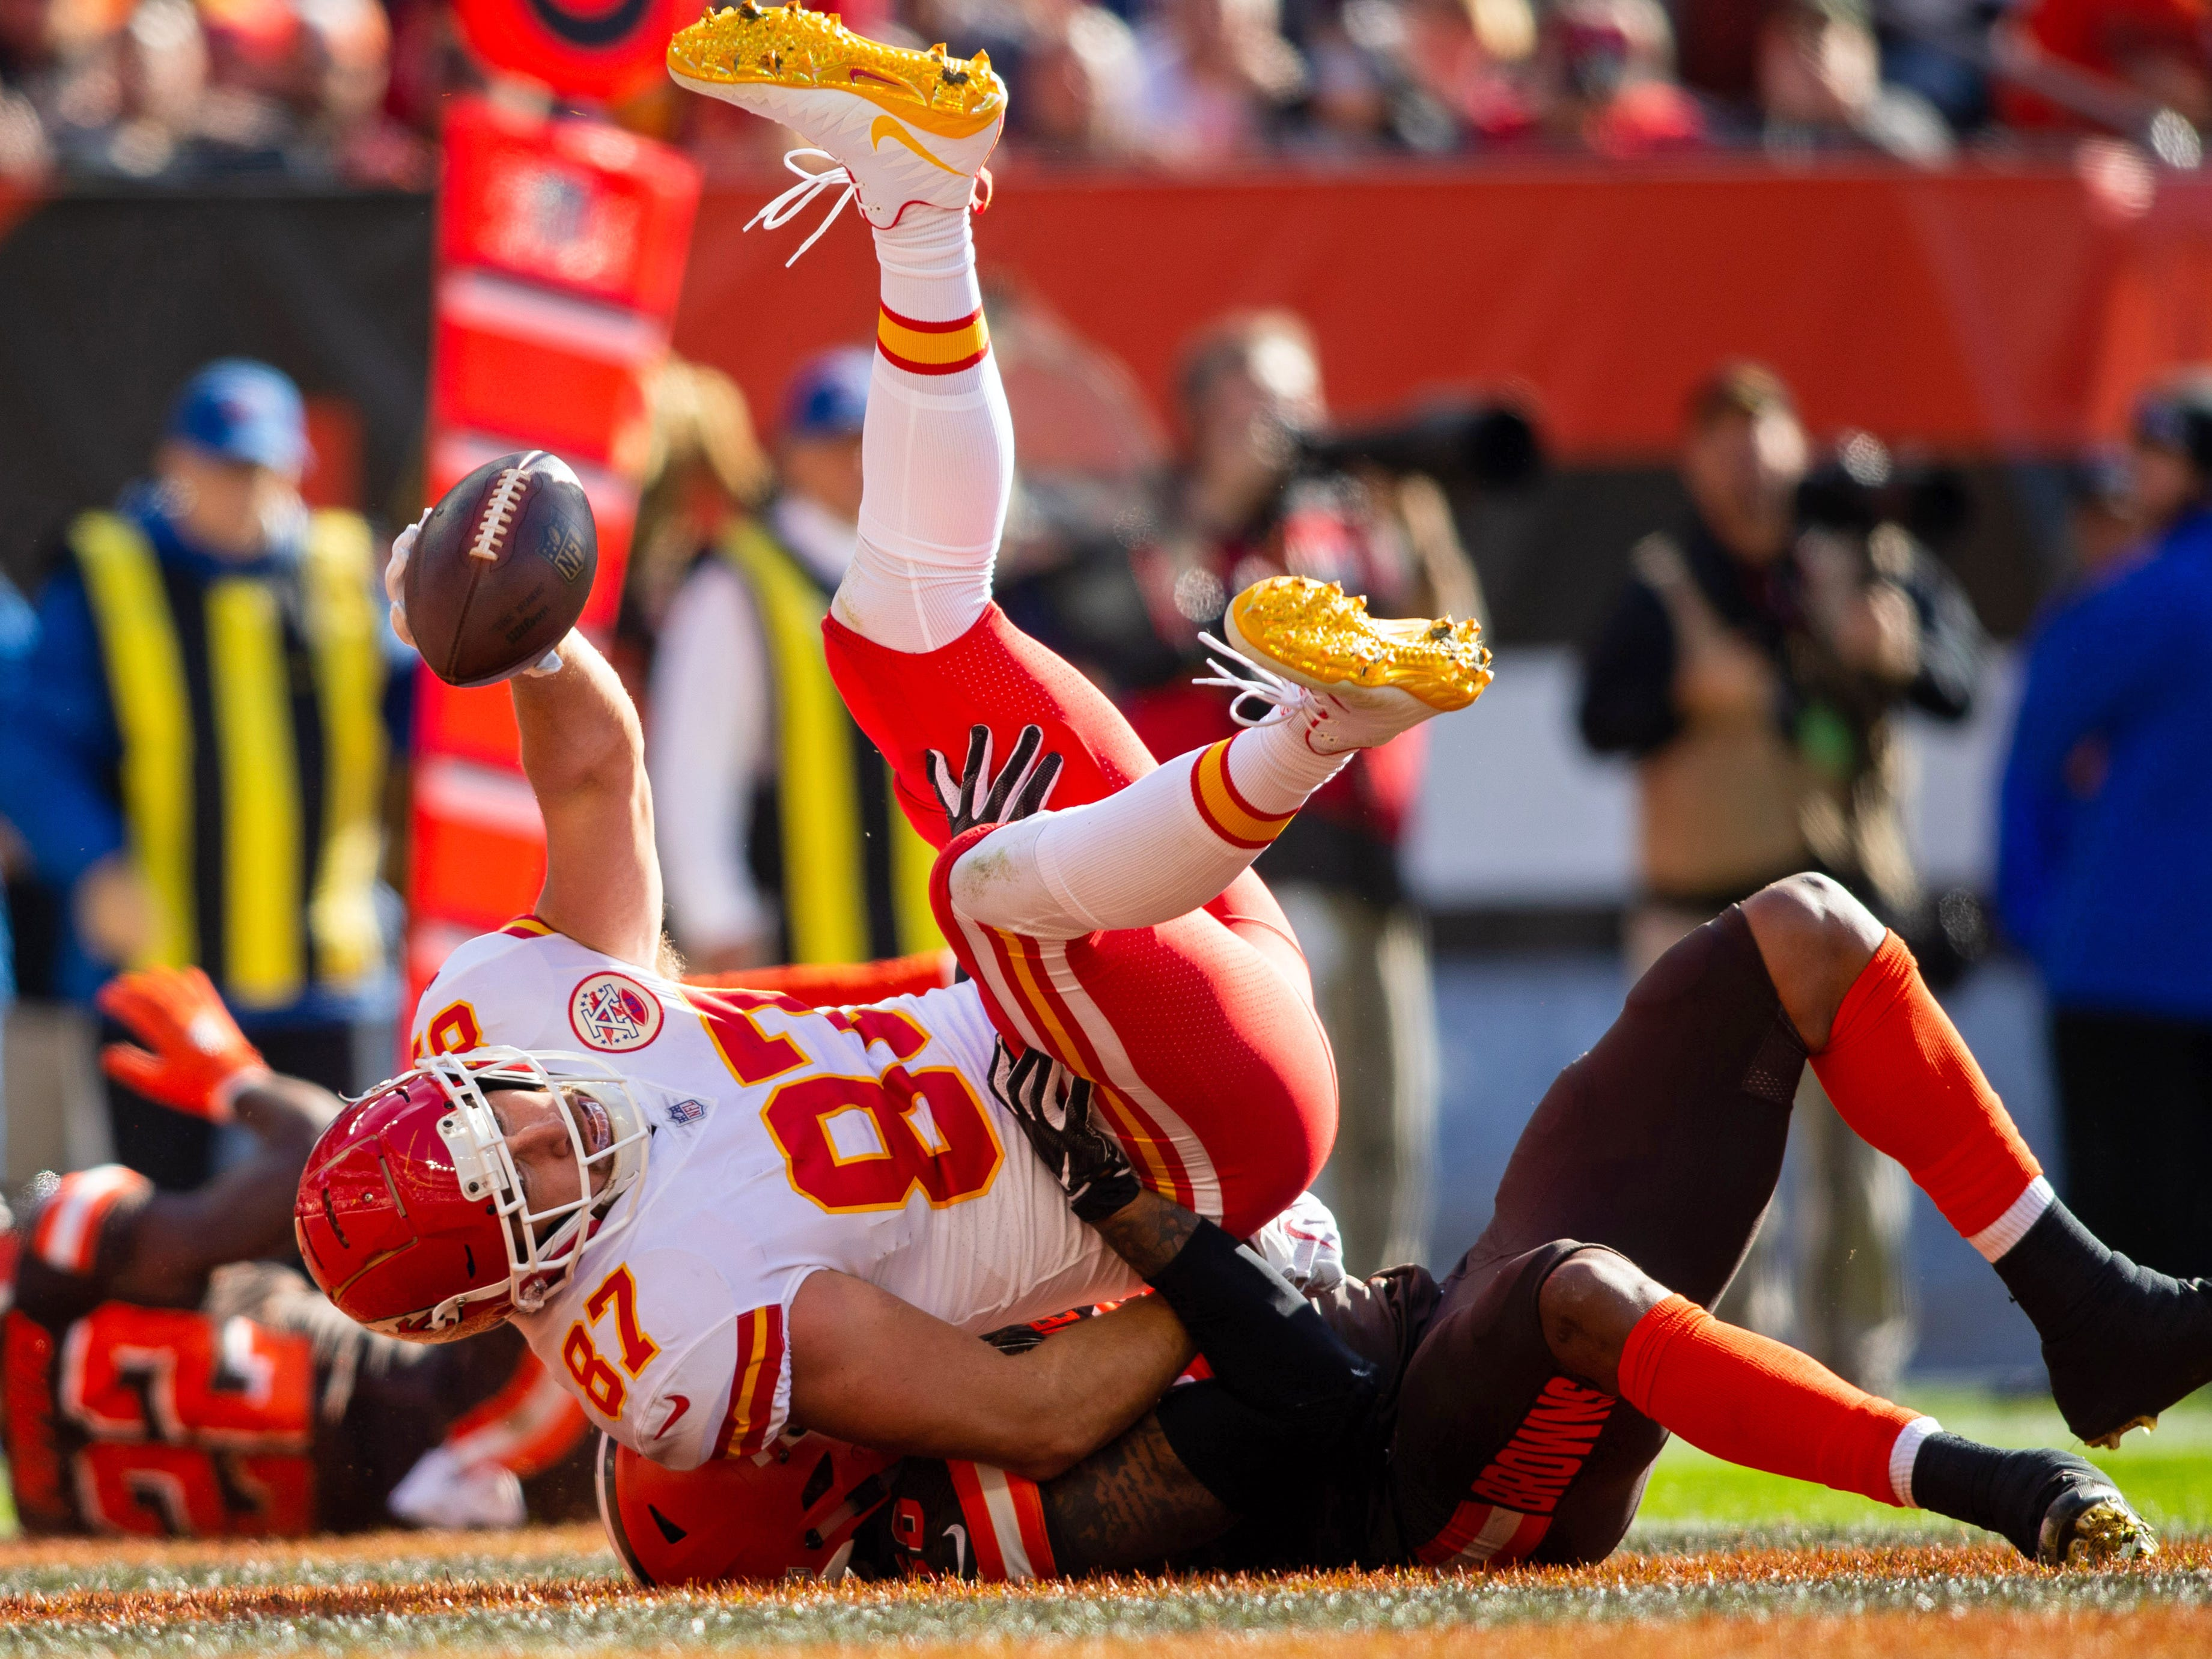 Kansas City Chiefs tight end Travis Kelce (87), in the grasp of Cleveland Browns outside linebacker Christian Kirksey (58), gets in for a second-quarter touchdown FirstEnergy Stadium. 2018114_jcd_bg7_070.JPG